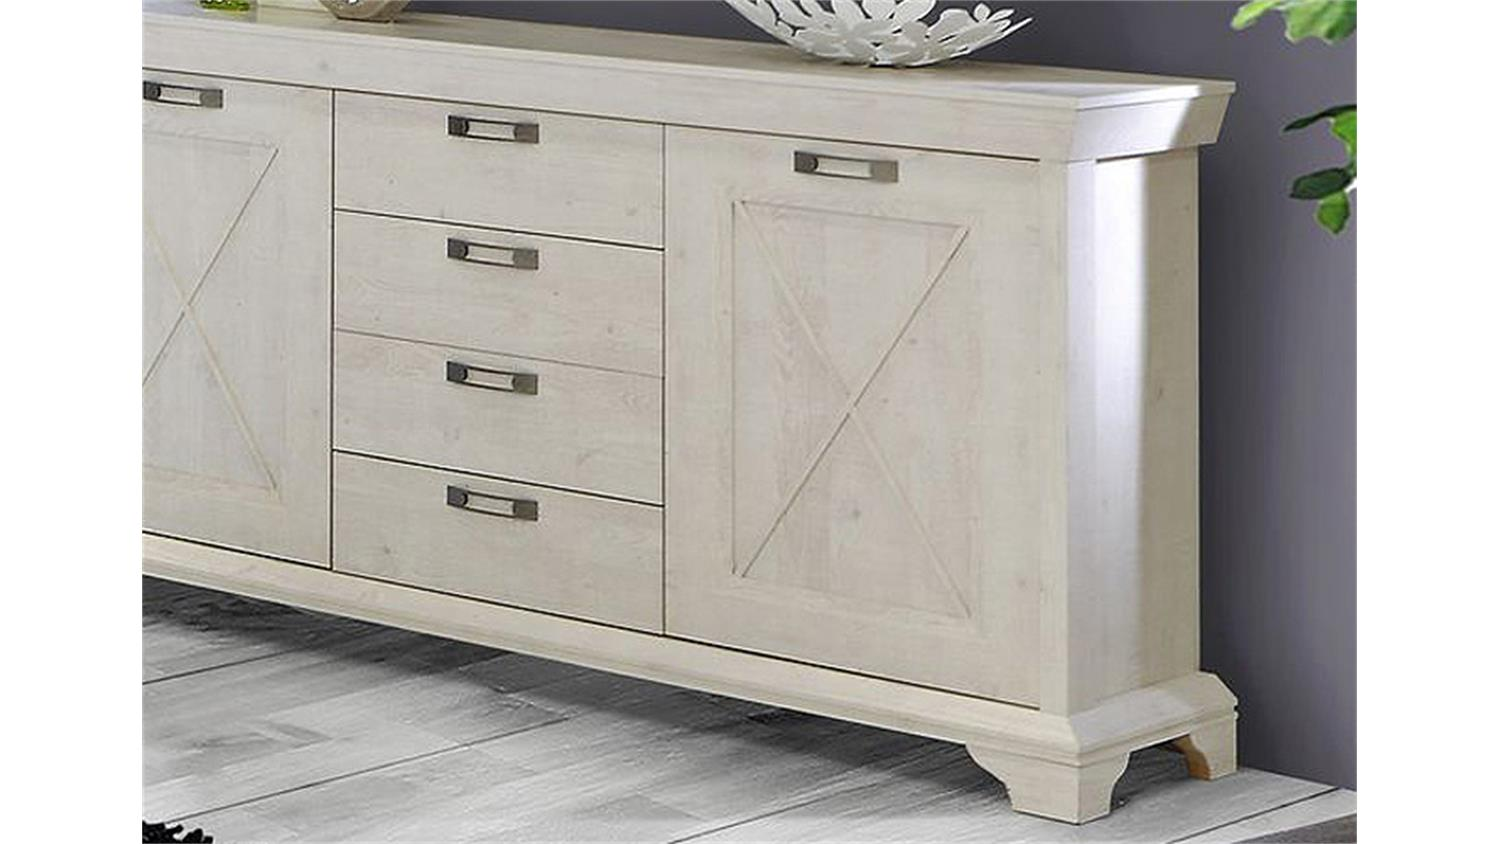 Chalet Moebel Cubico Highboard Pinie In Pinie Weiss Nachbildung With Highboard